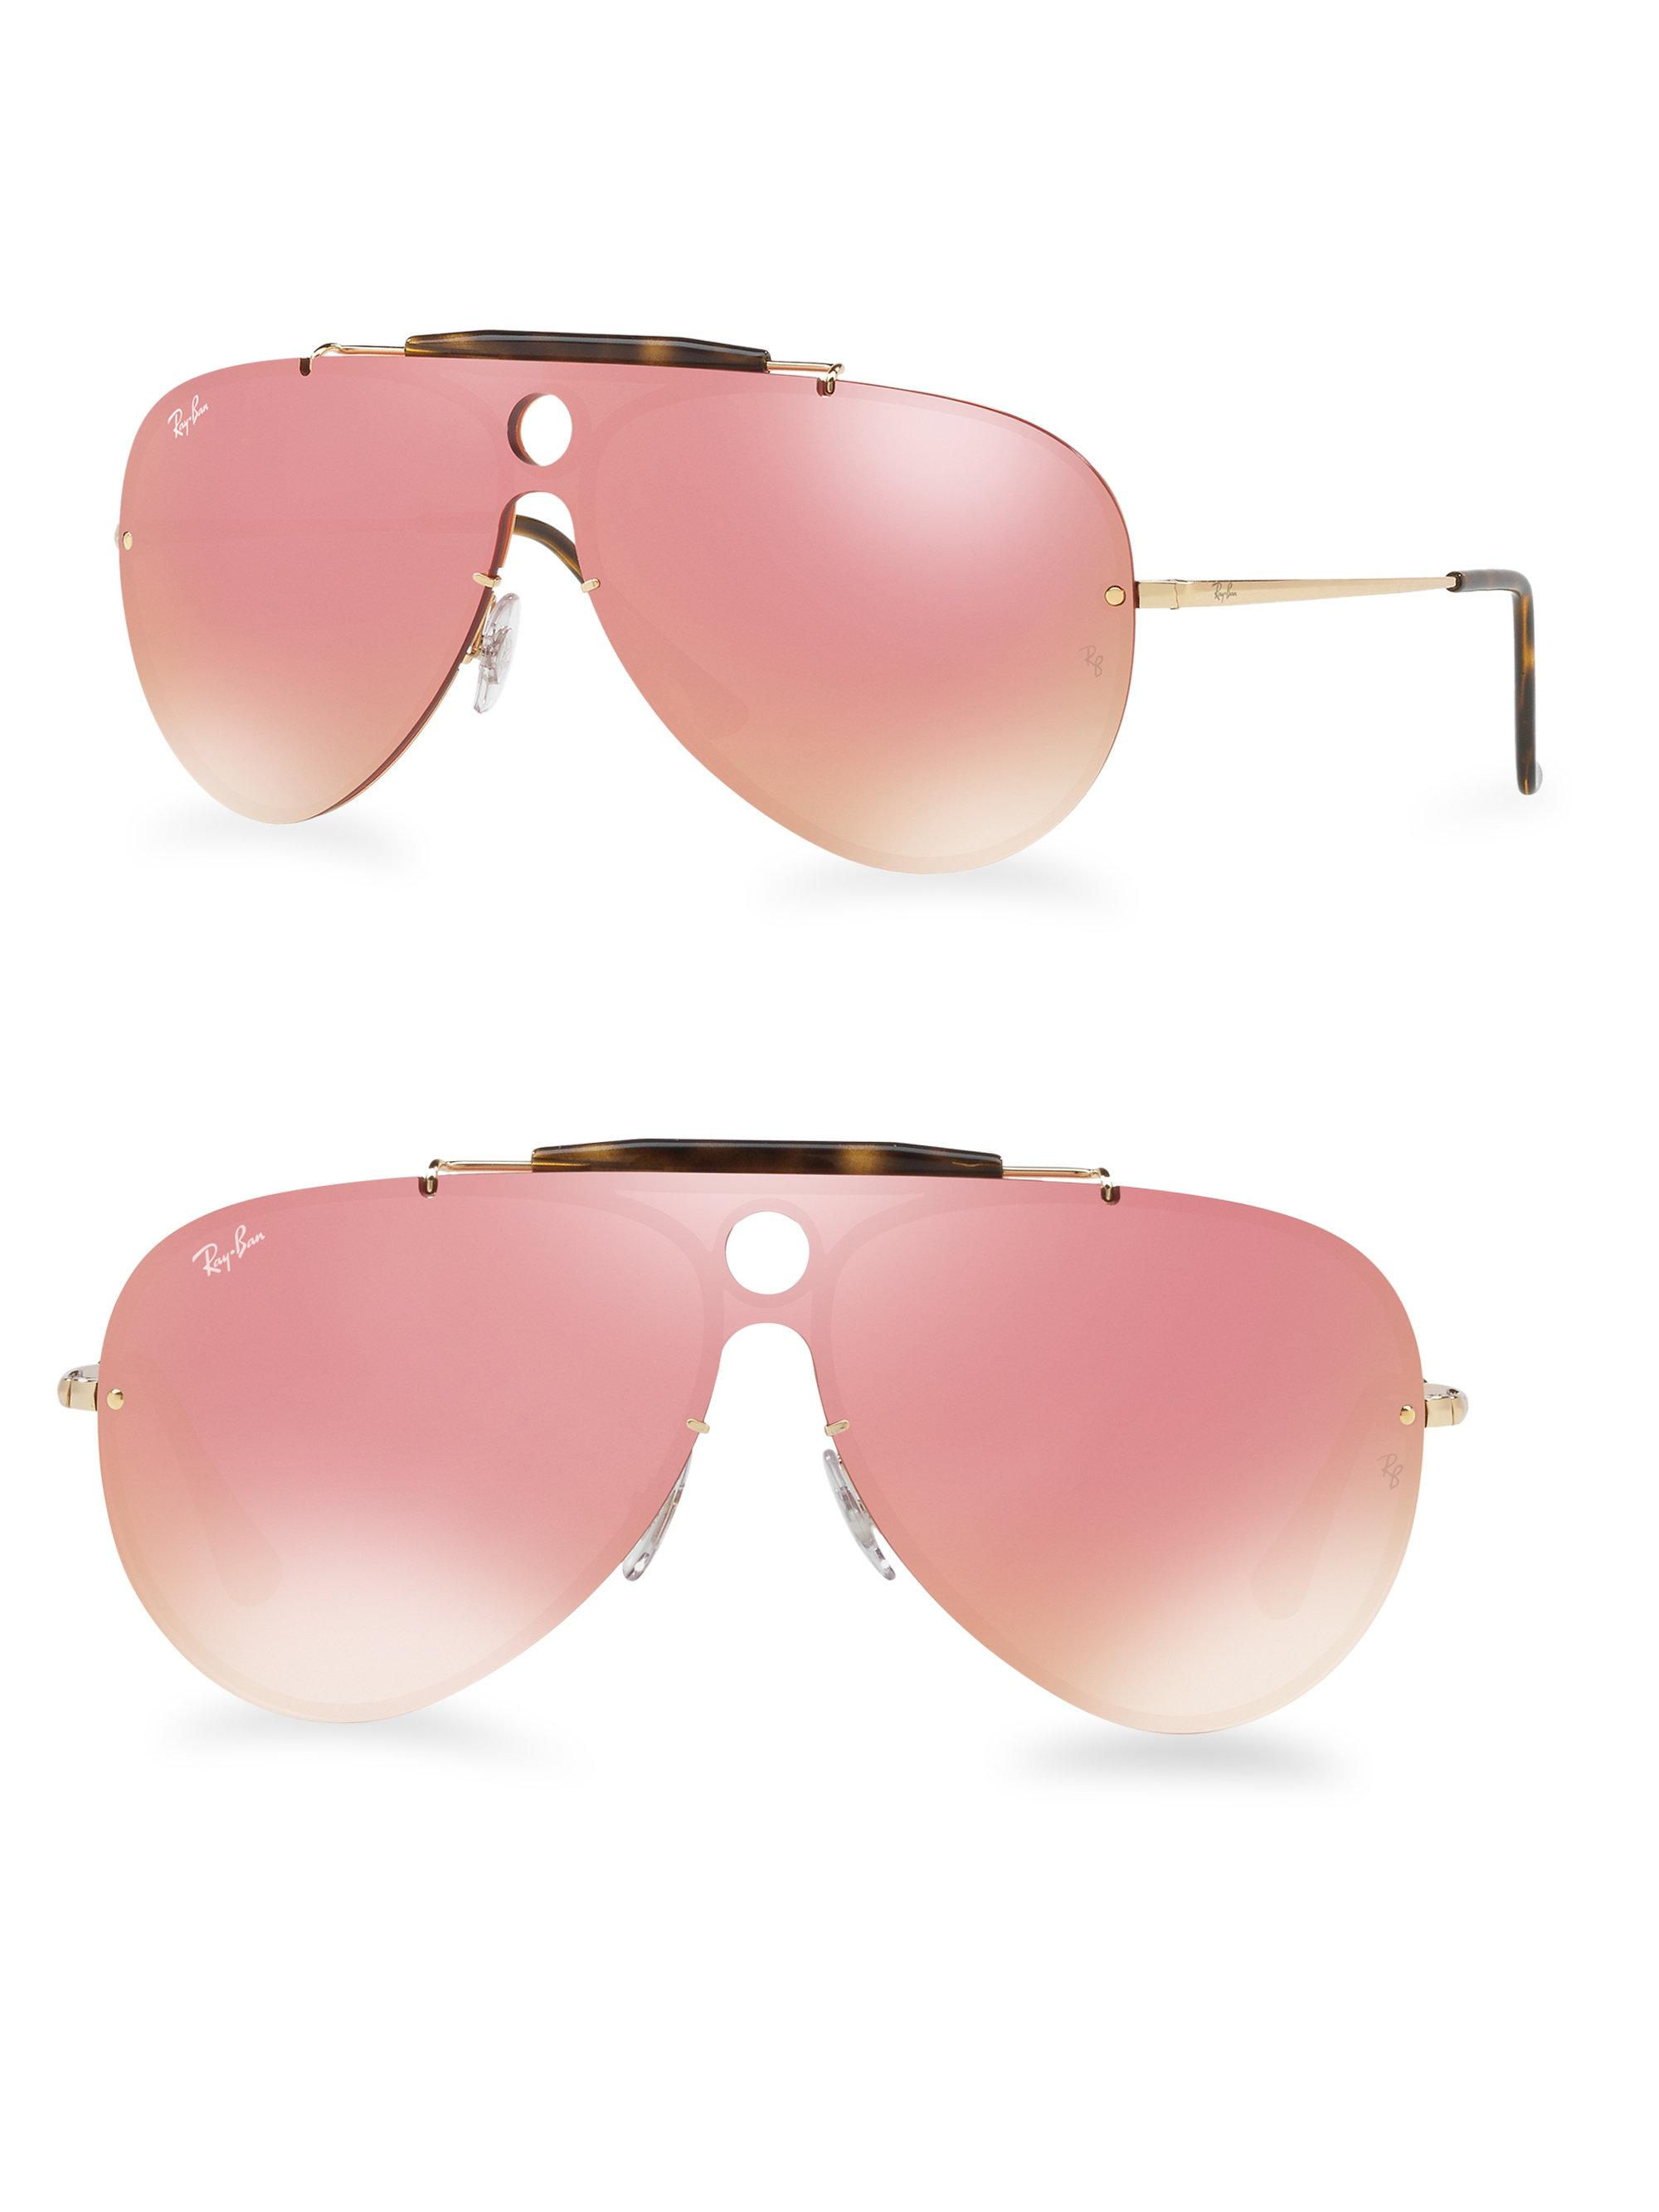 d2f9a81d32 ... new zealand lyst ray ban blaze shooter mirrored aviator sunglasses in  pink 1a360 b281f